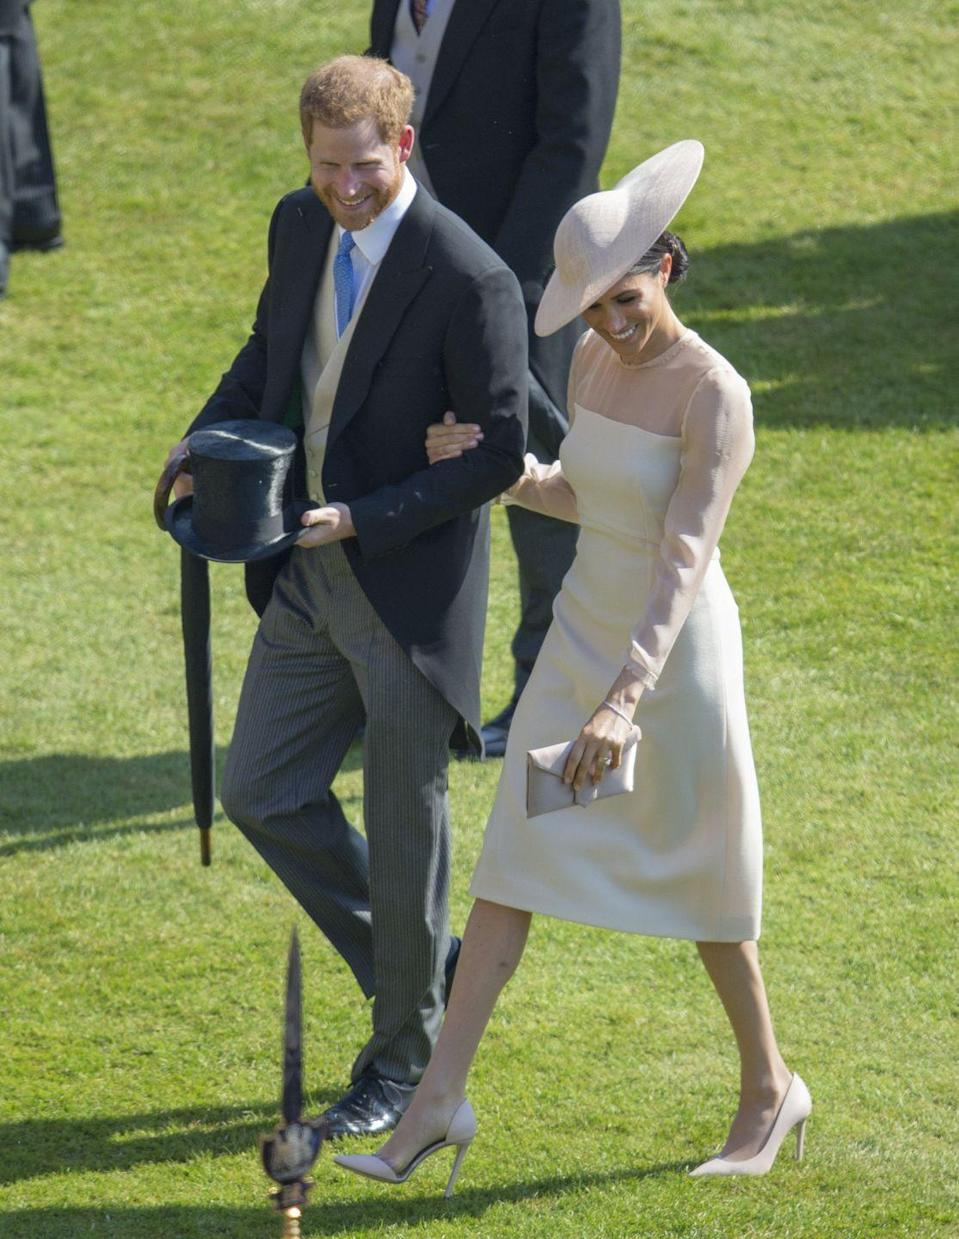 <p>Days after their royal wedding in May 2018, the couple were beaming with happiness as they attended Prince Charles' birthday party. We imagine they were enjoying marital bliss! </p>